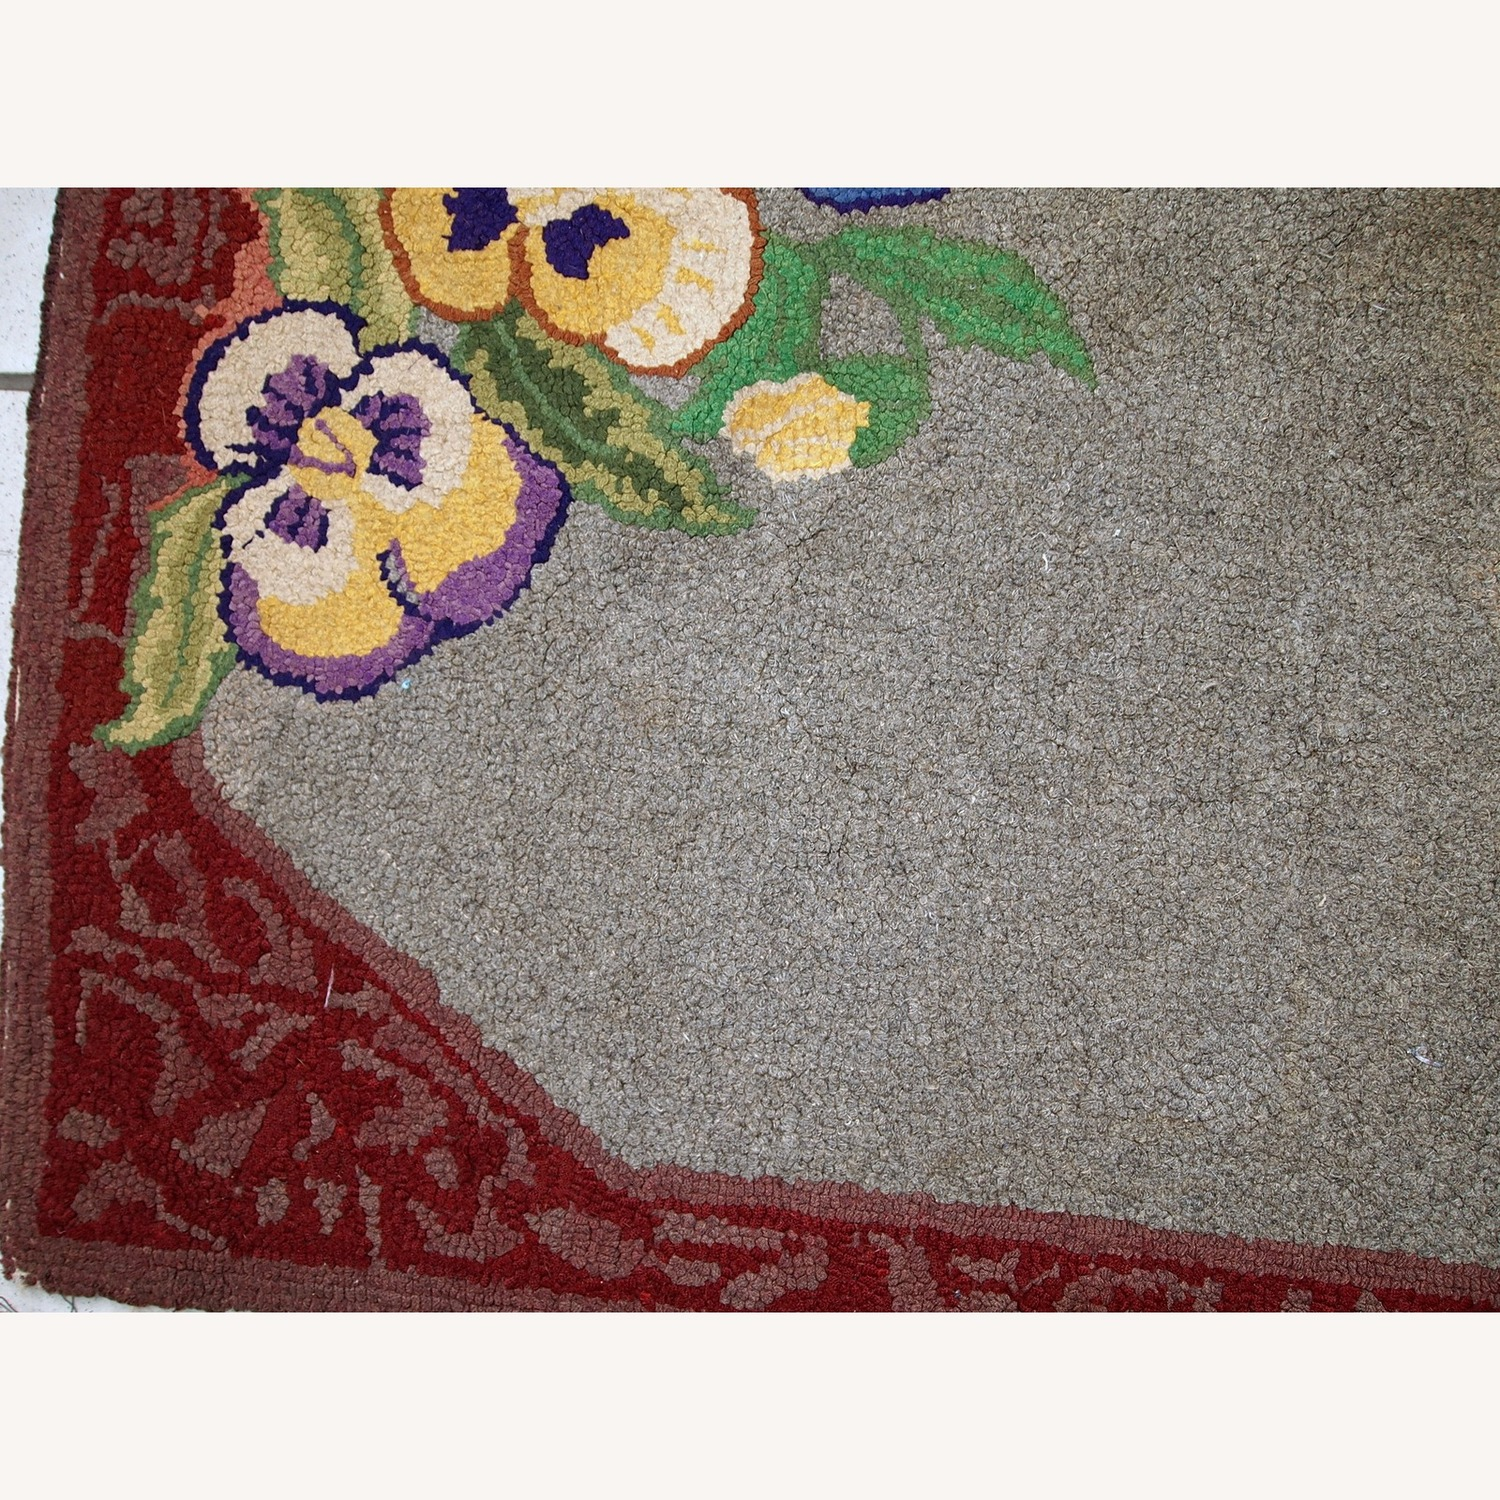 Handmade Antique American Hooked Rug - image-8